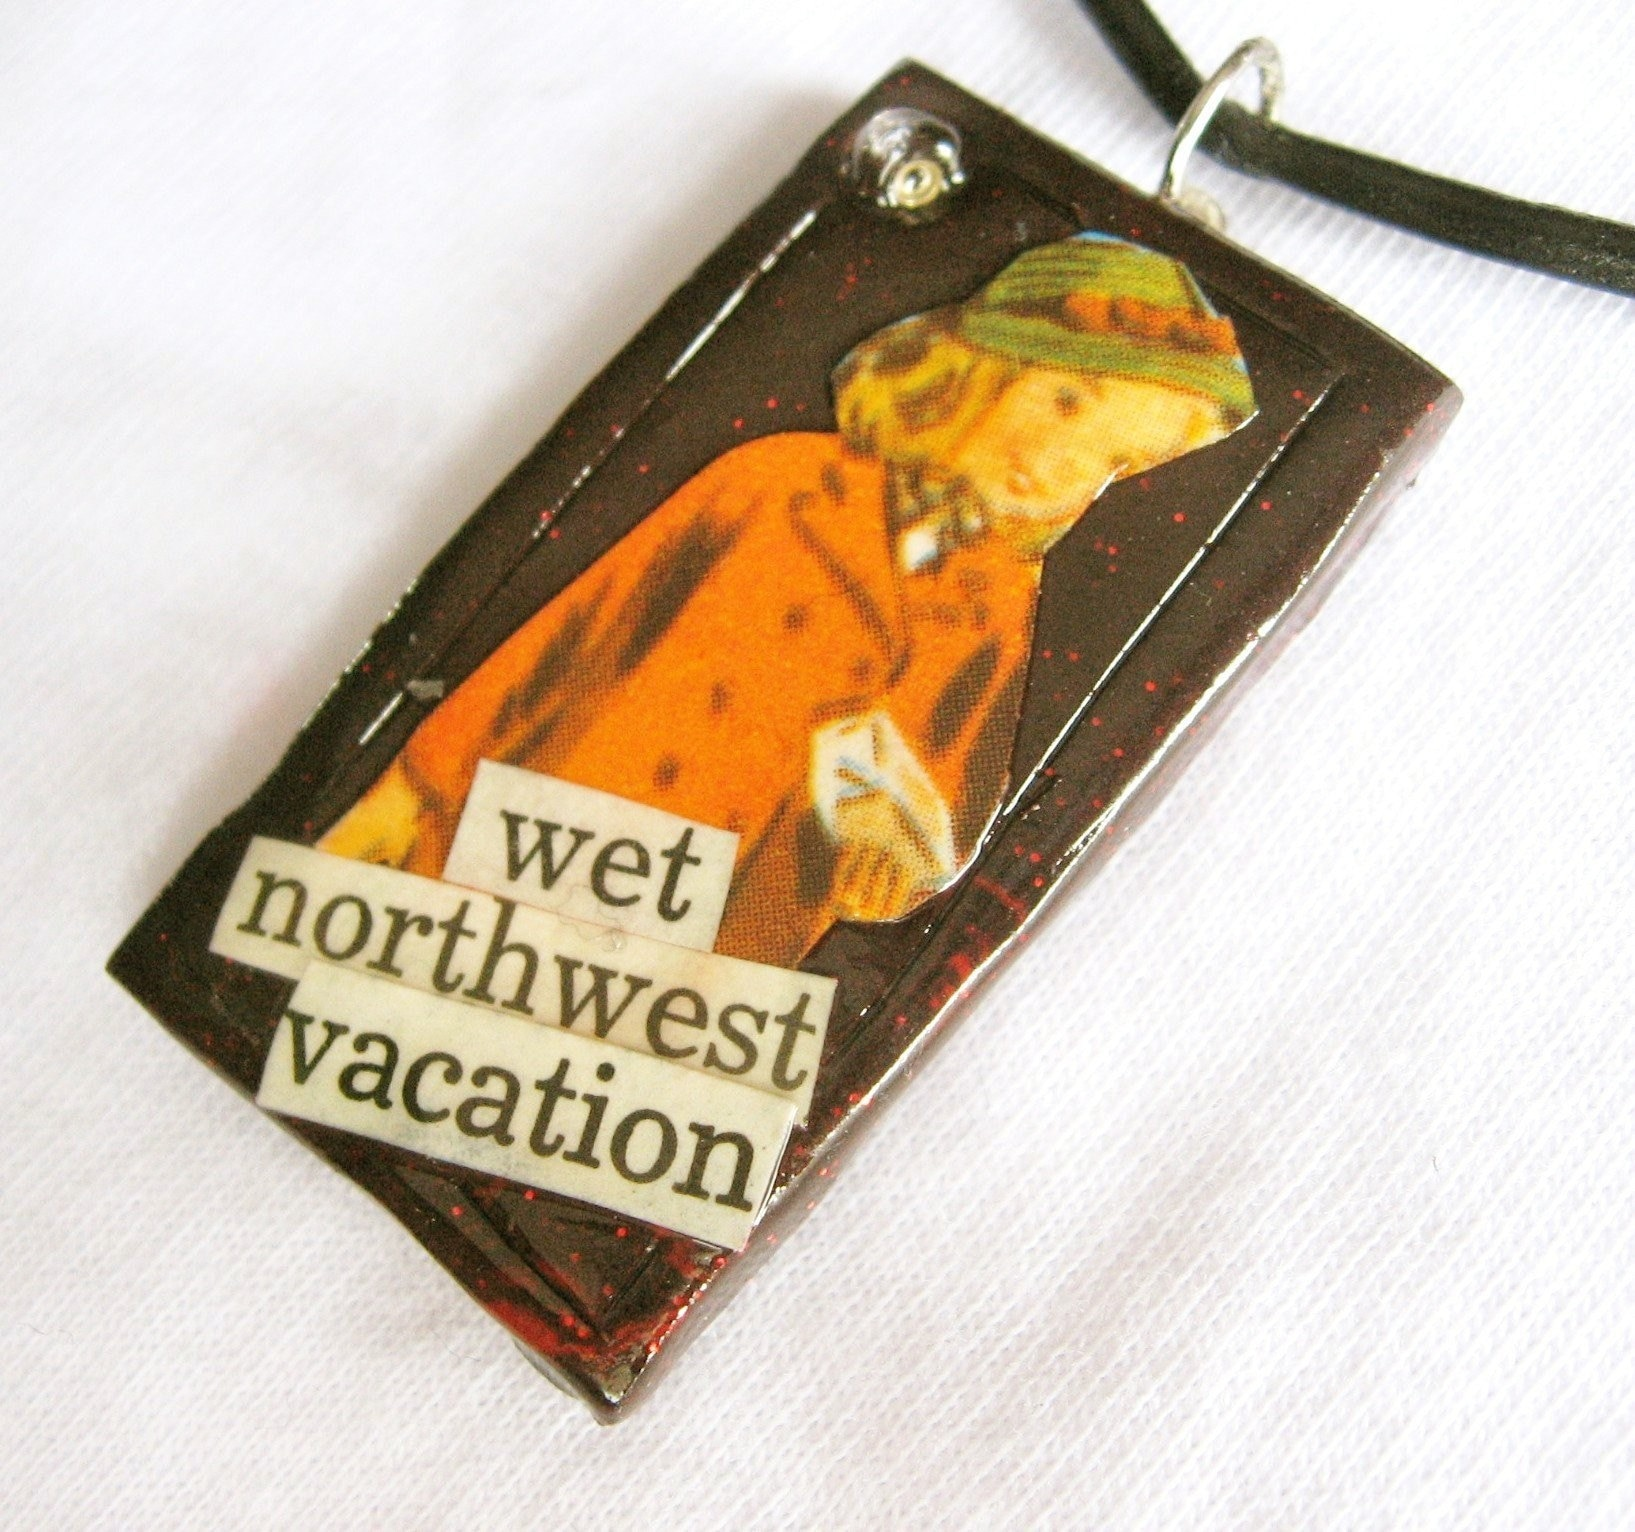 Wet Northwest Vacation pendant (on leather cord)